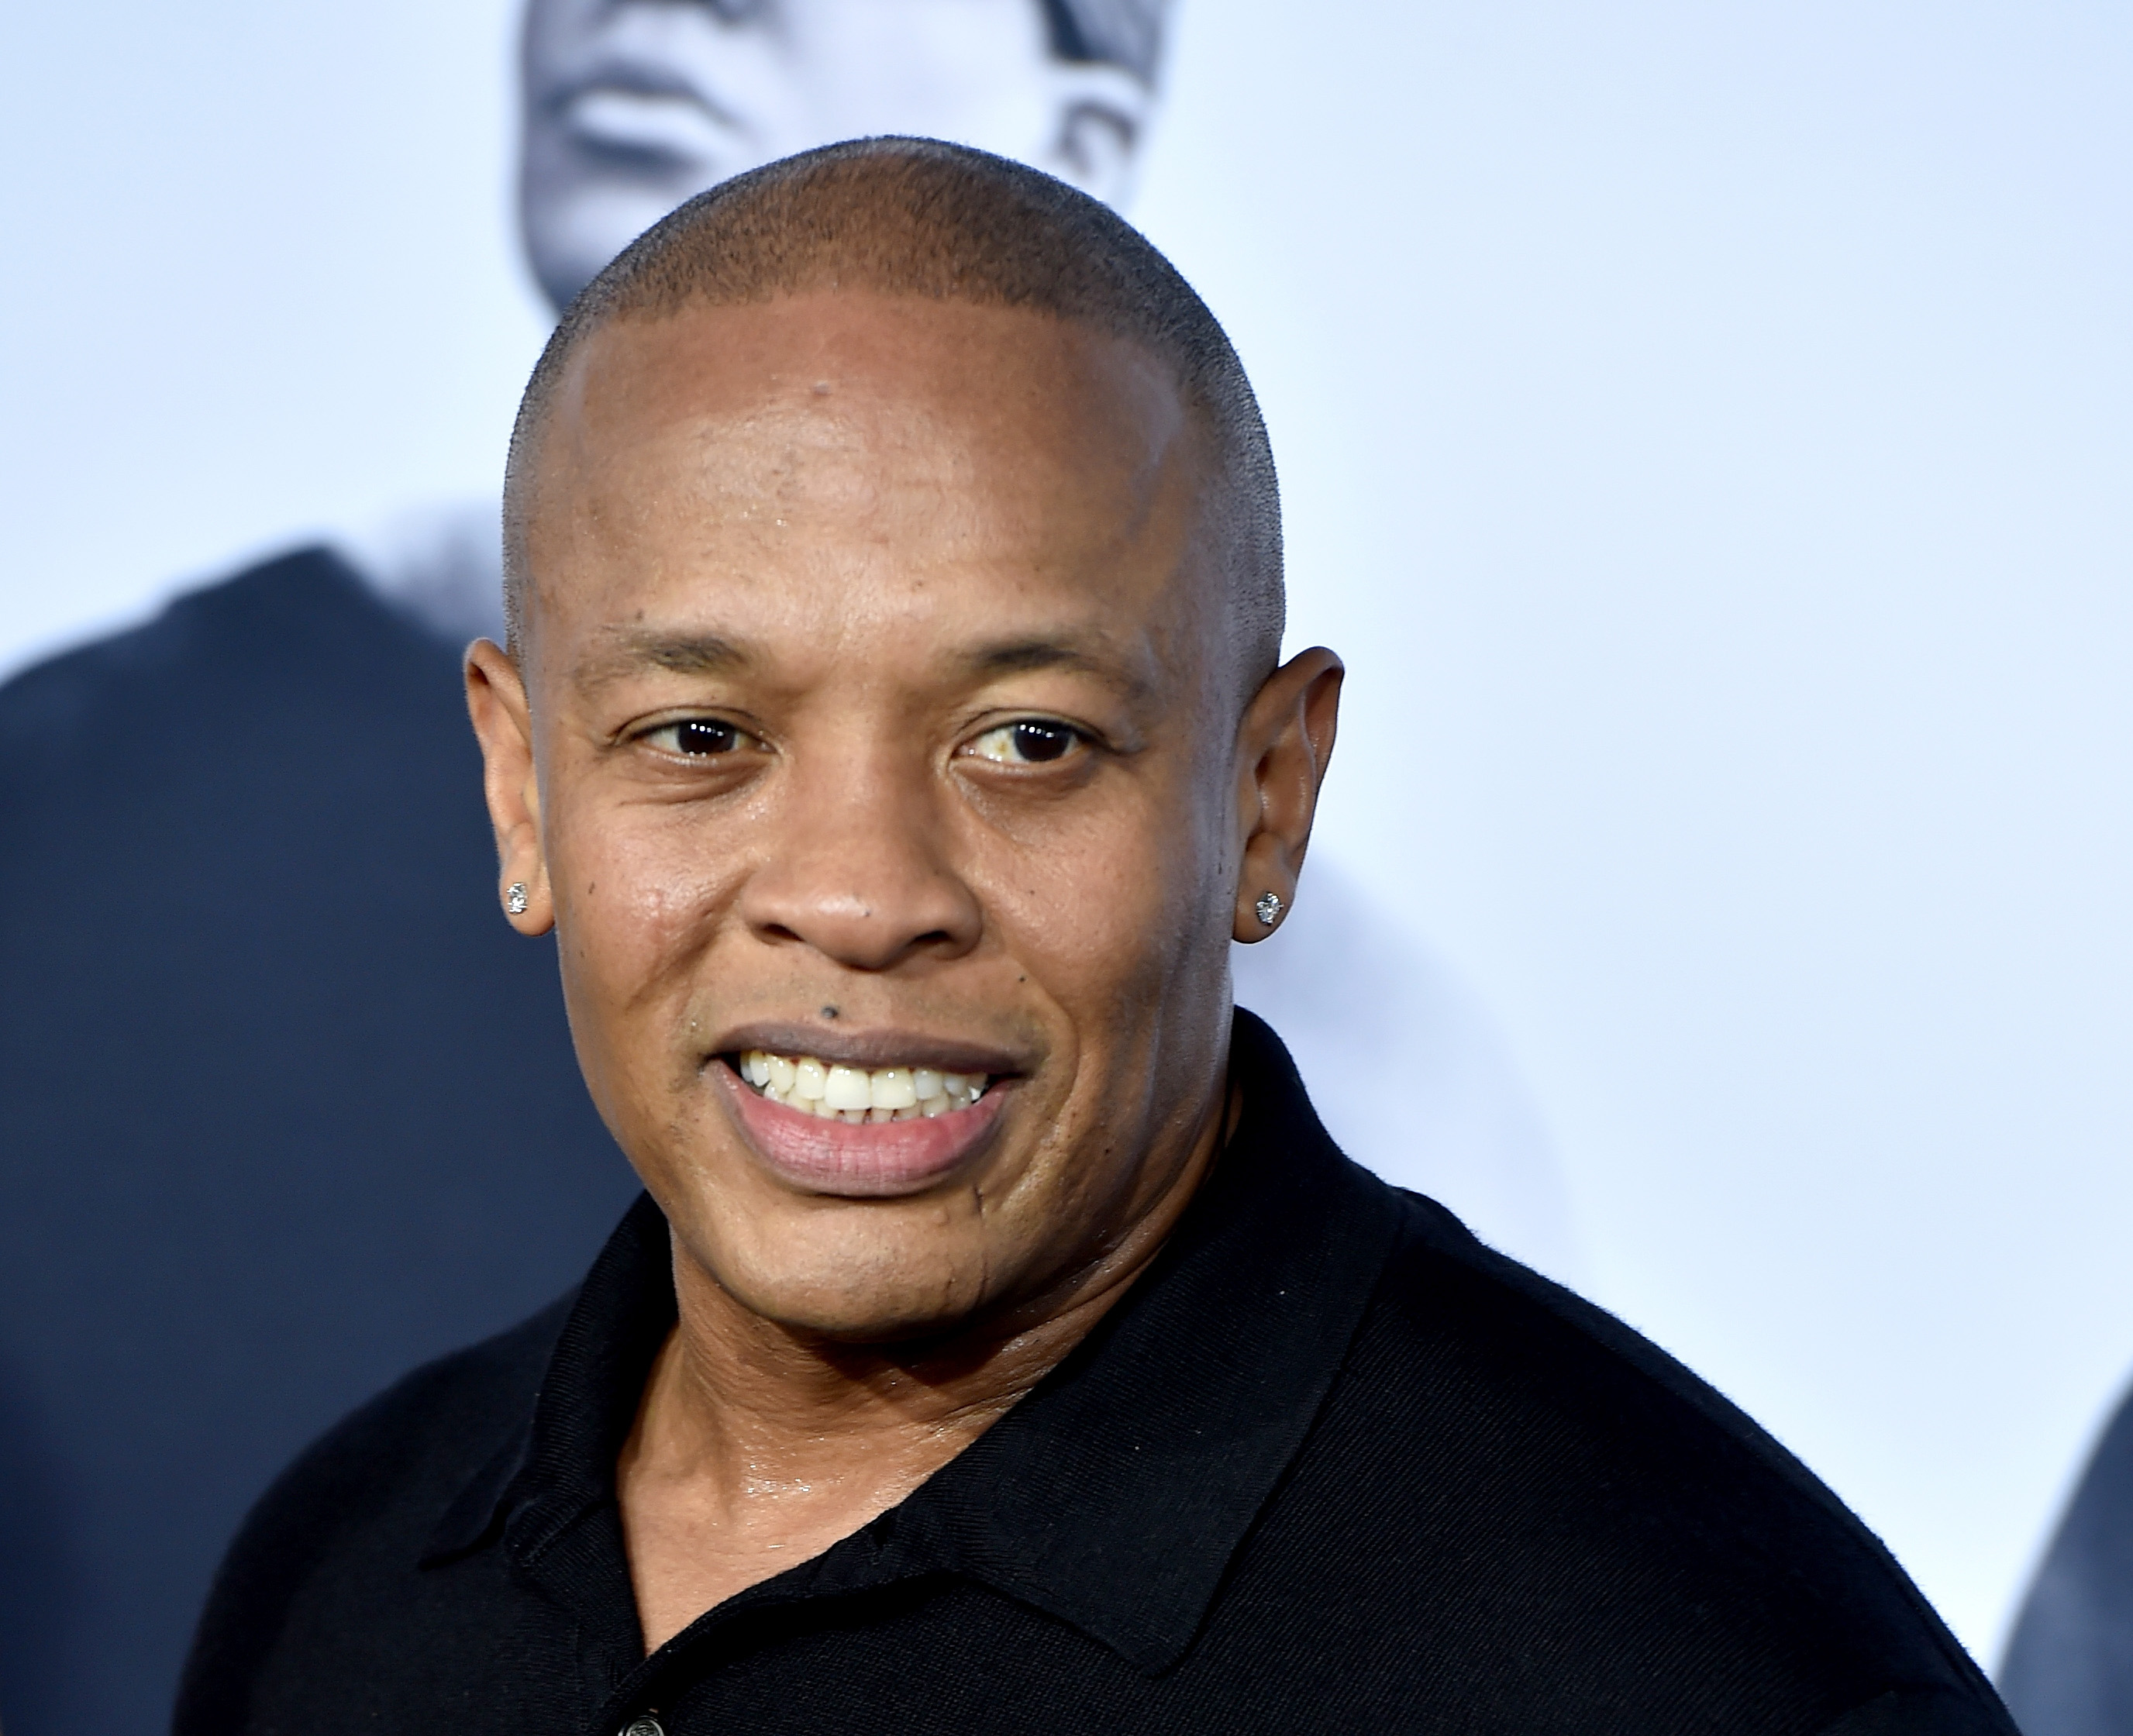 Rapper Dr. Dre arrives at the premiere of Universal Pictures and Legendary Pictures'  Straight Outta Compton  at the Microsoft Theatre in Los Angeles on Aug. 10, 2015